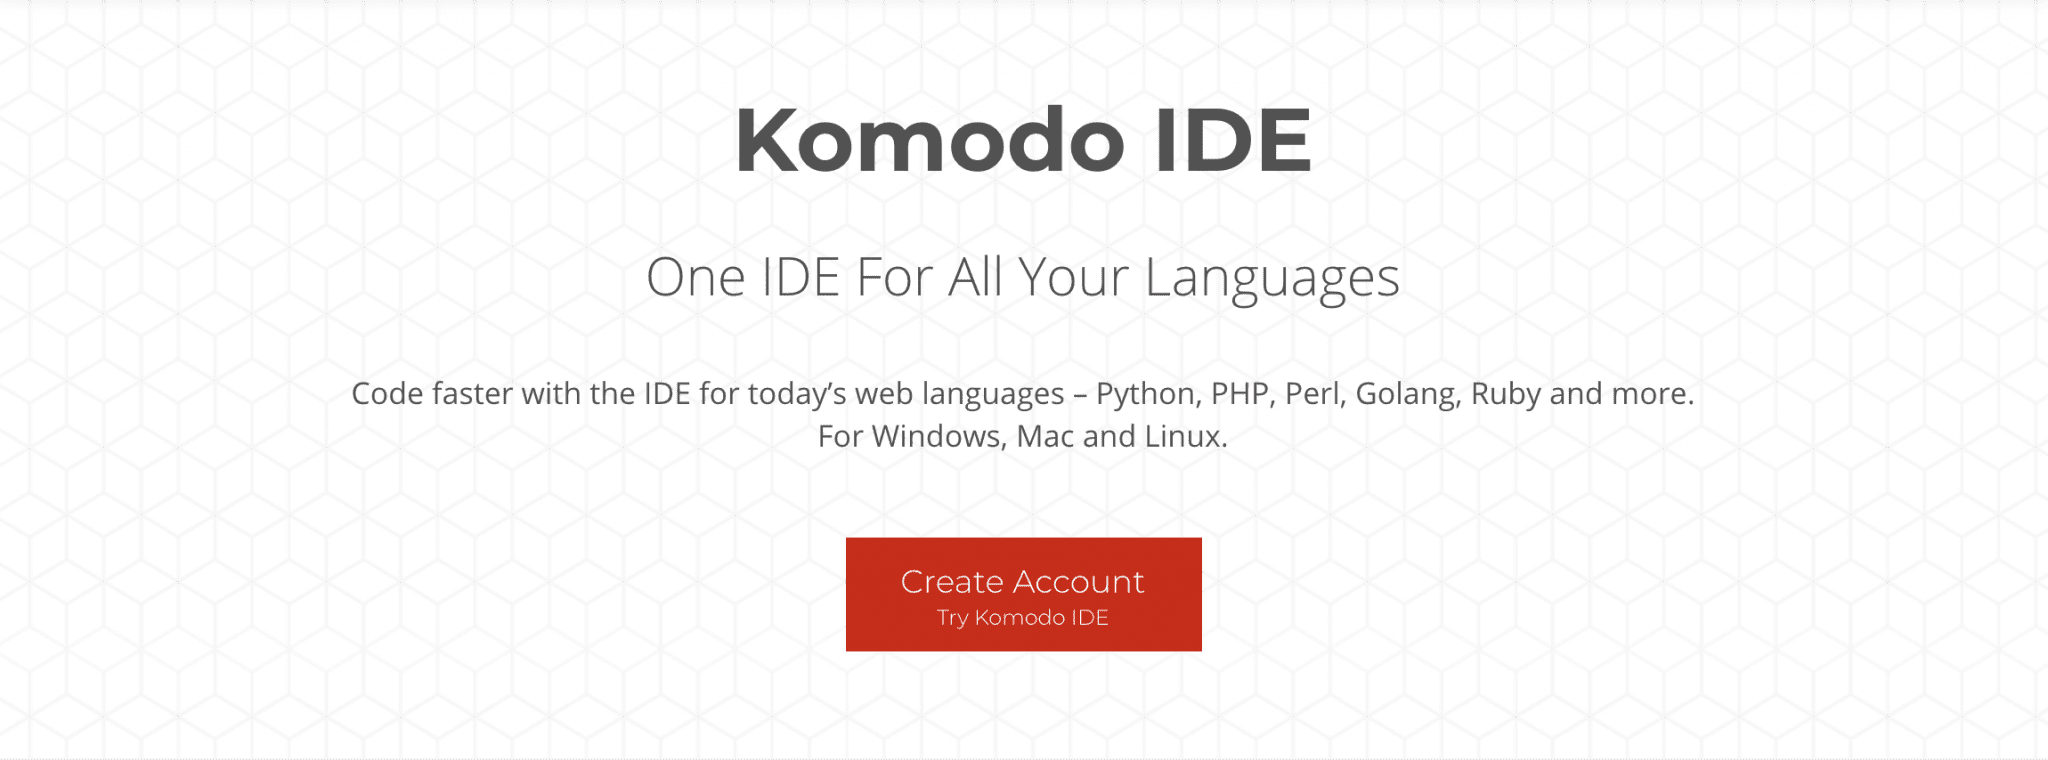 The Komodo IDE by ActiveState.